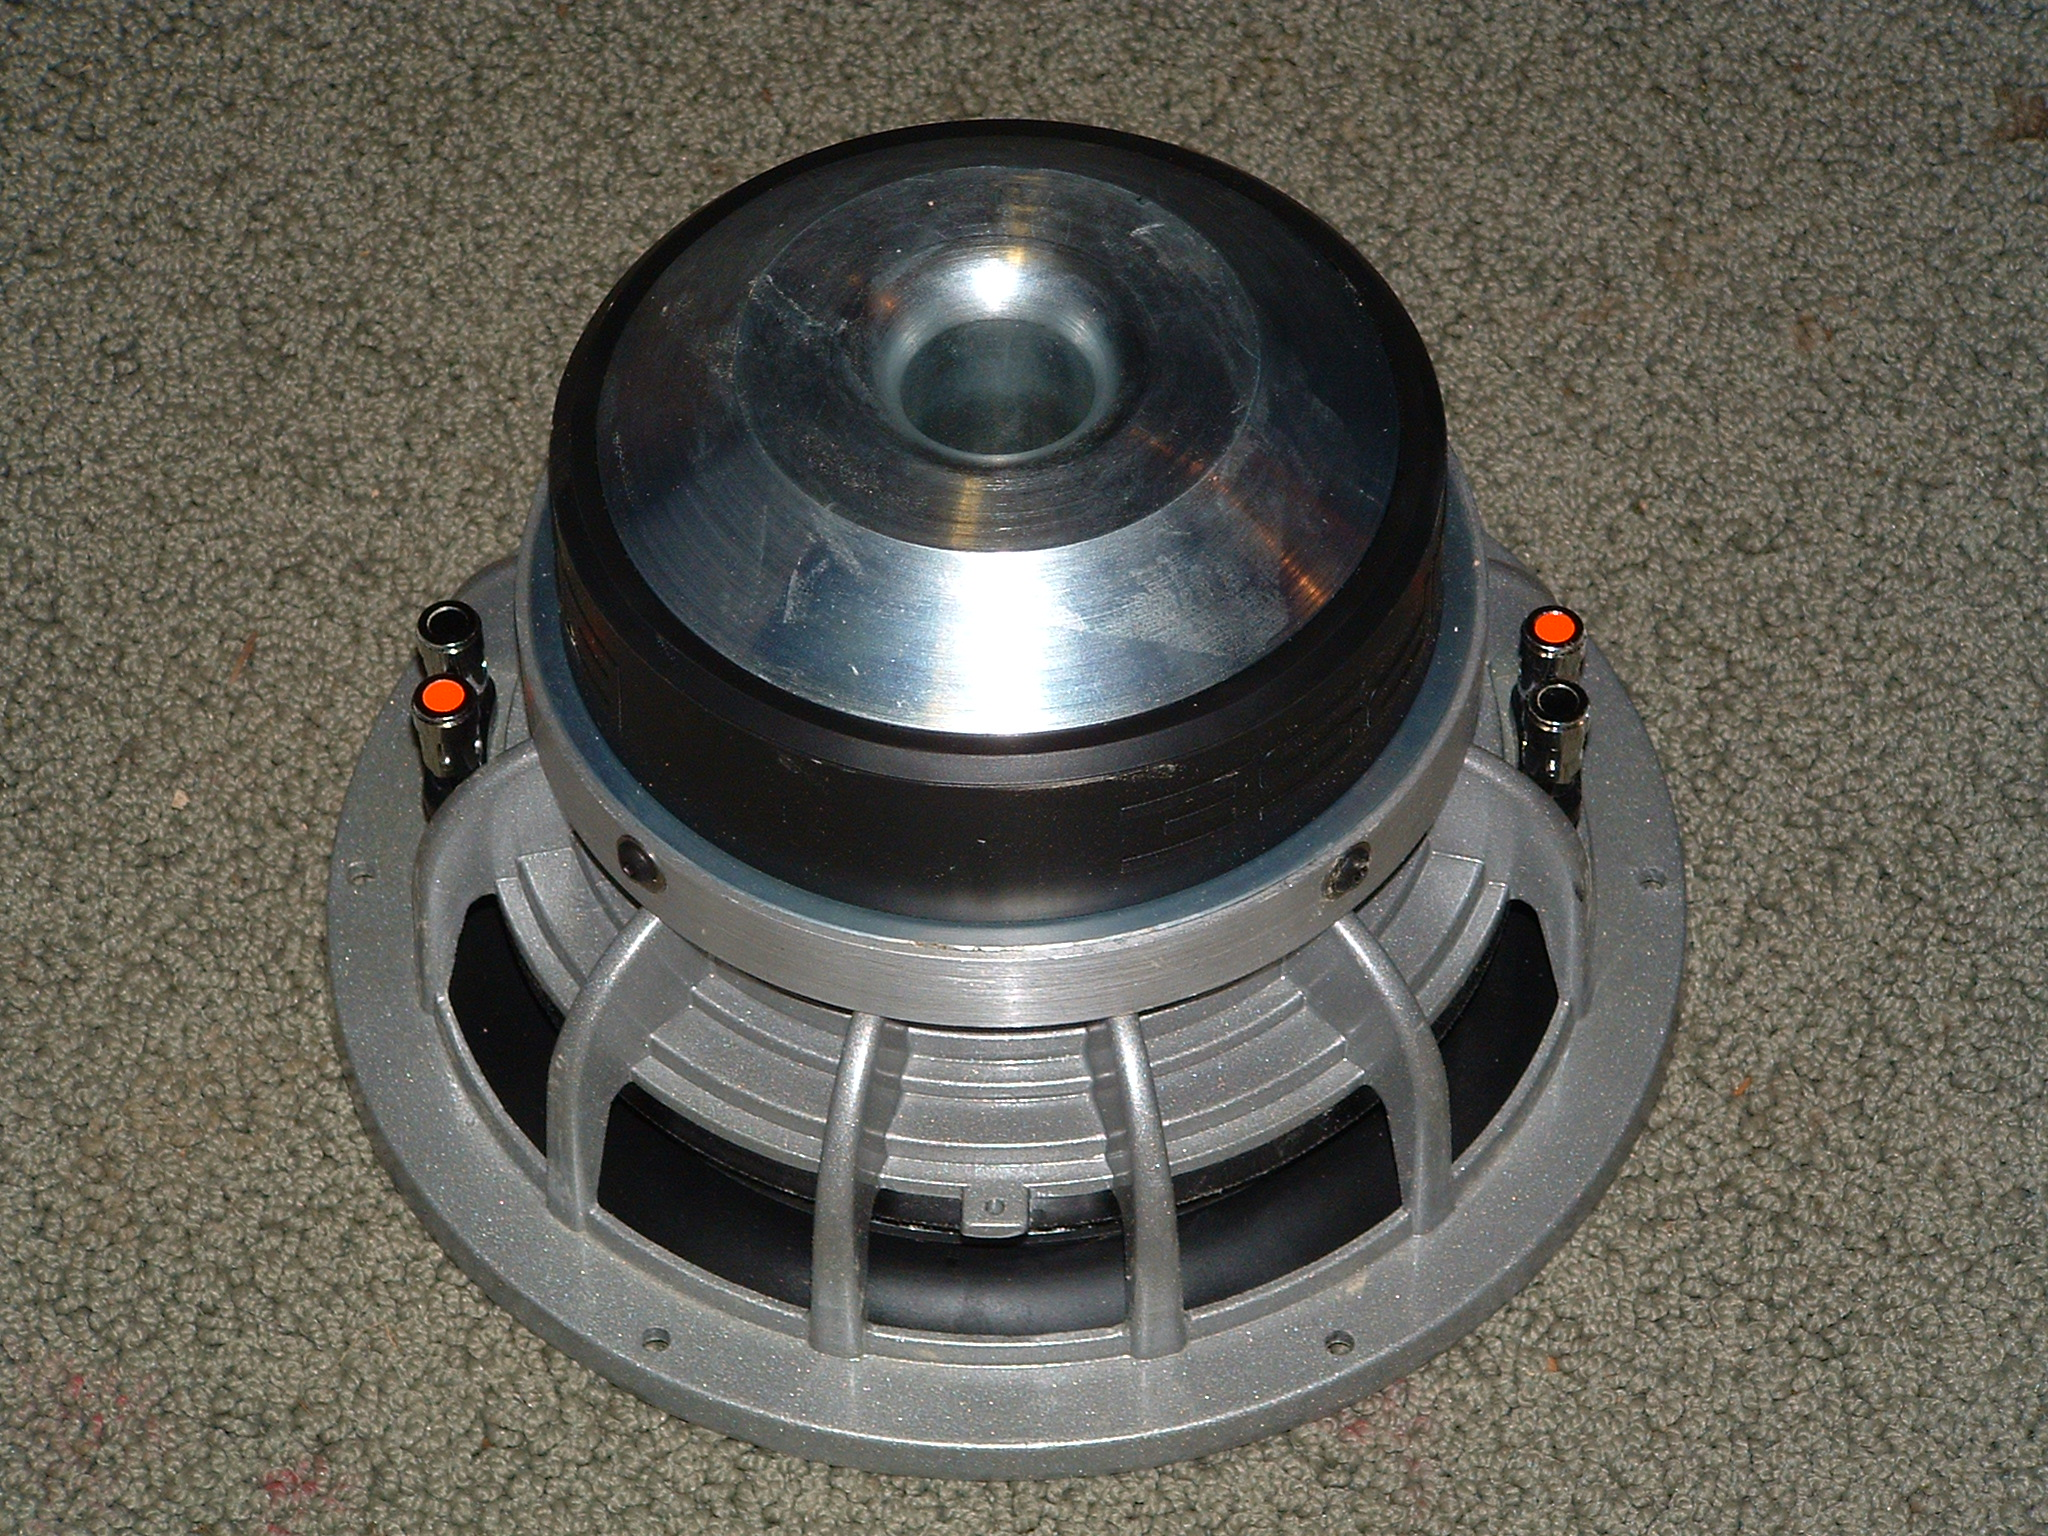 Nick Bocchi Subwoofers Will Consistent Power To Both Maximizing Your Subwoofer Pictured Above This Is A Rear View Of The With Its Massive Magnet